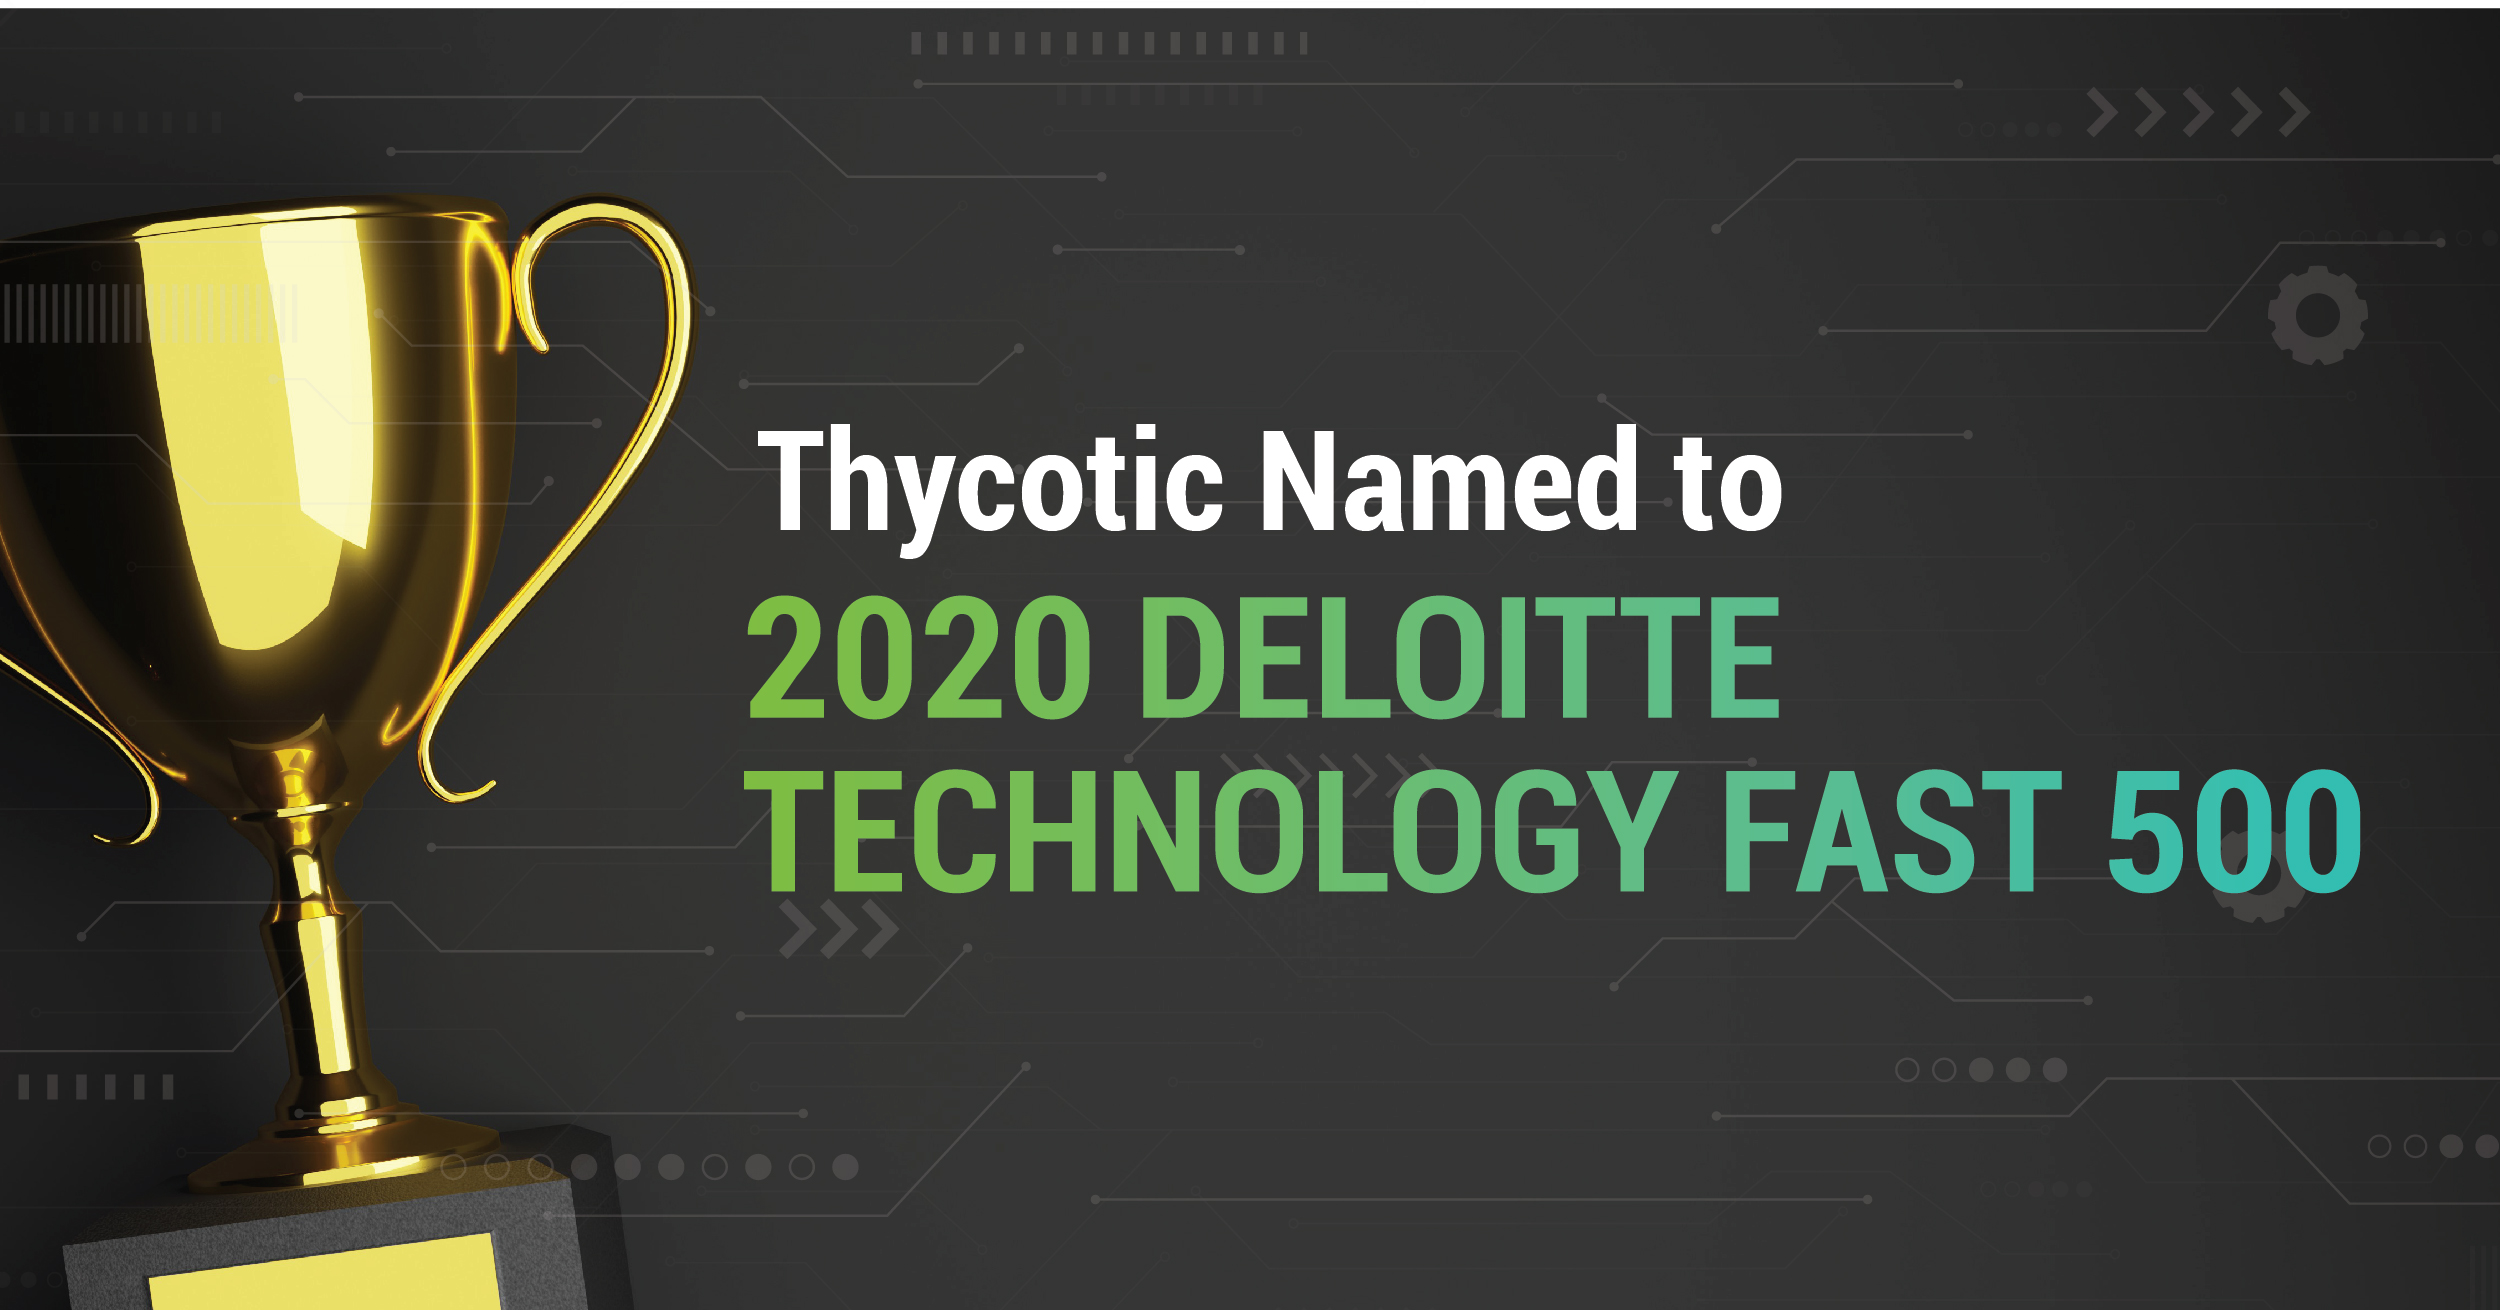 Thycotic named to Deloitte Technology Fast 500